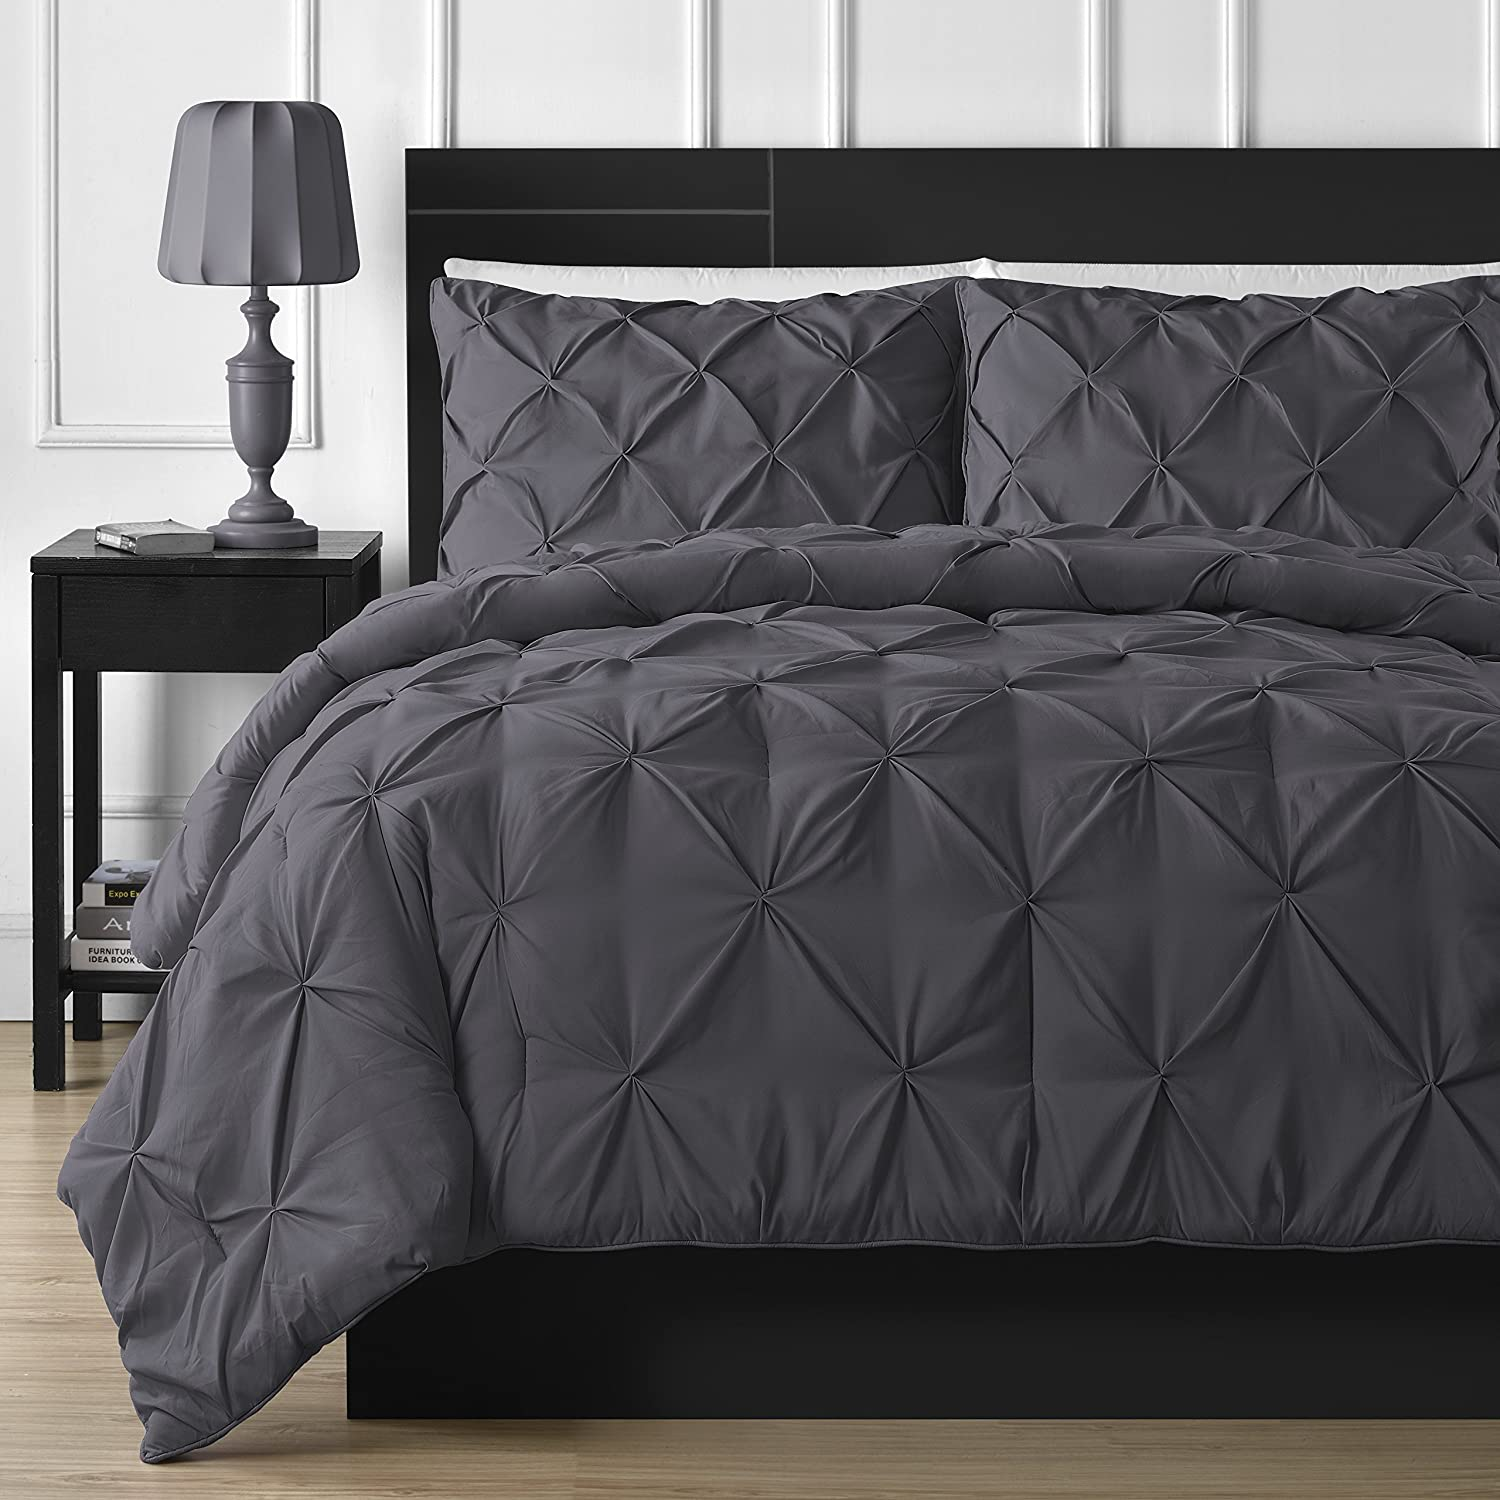 grey dark comforters and of coral size pictures comforter bedding charcoal gray design teal crib bedspreads full sets setsgray remarkable